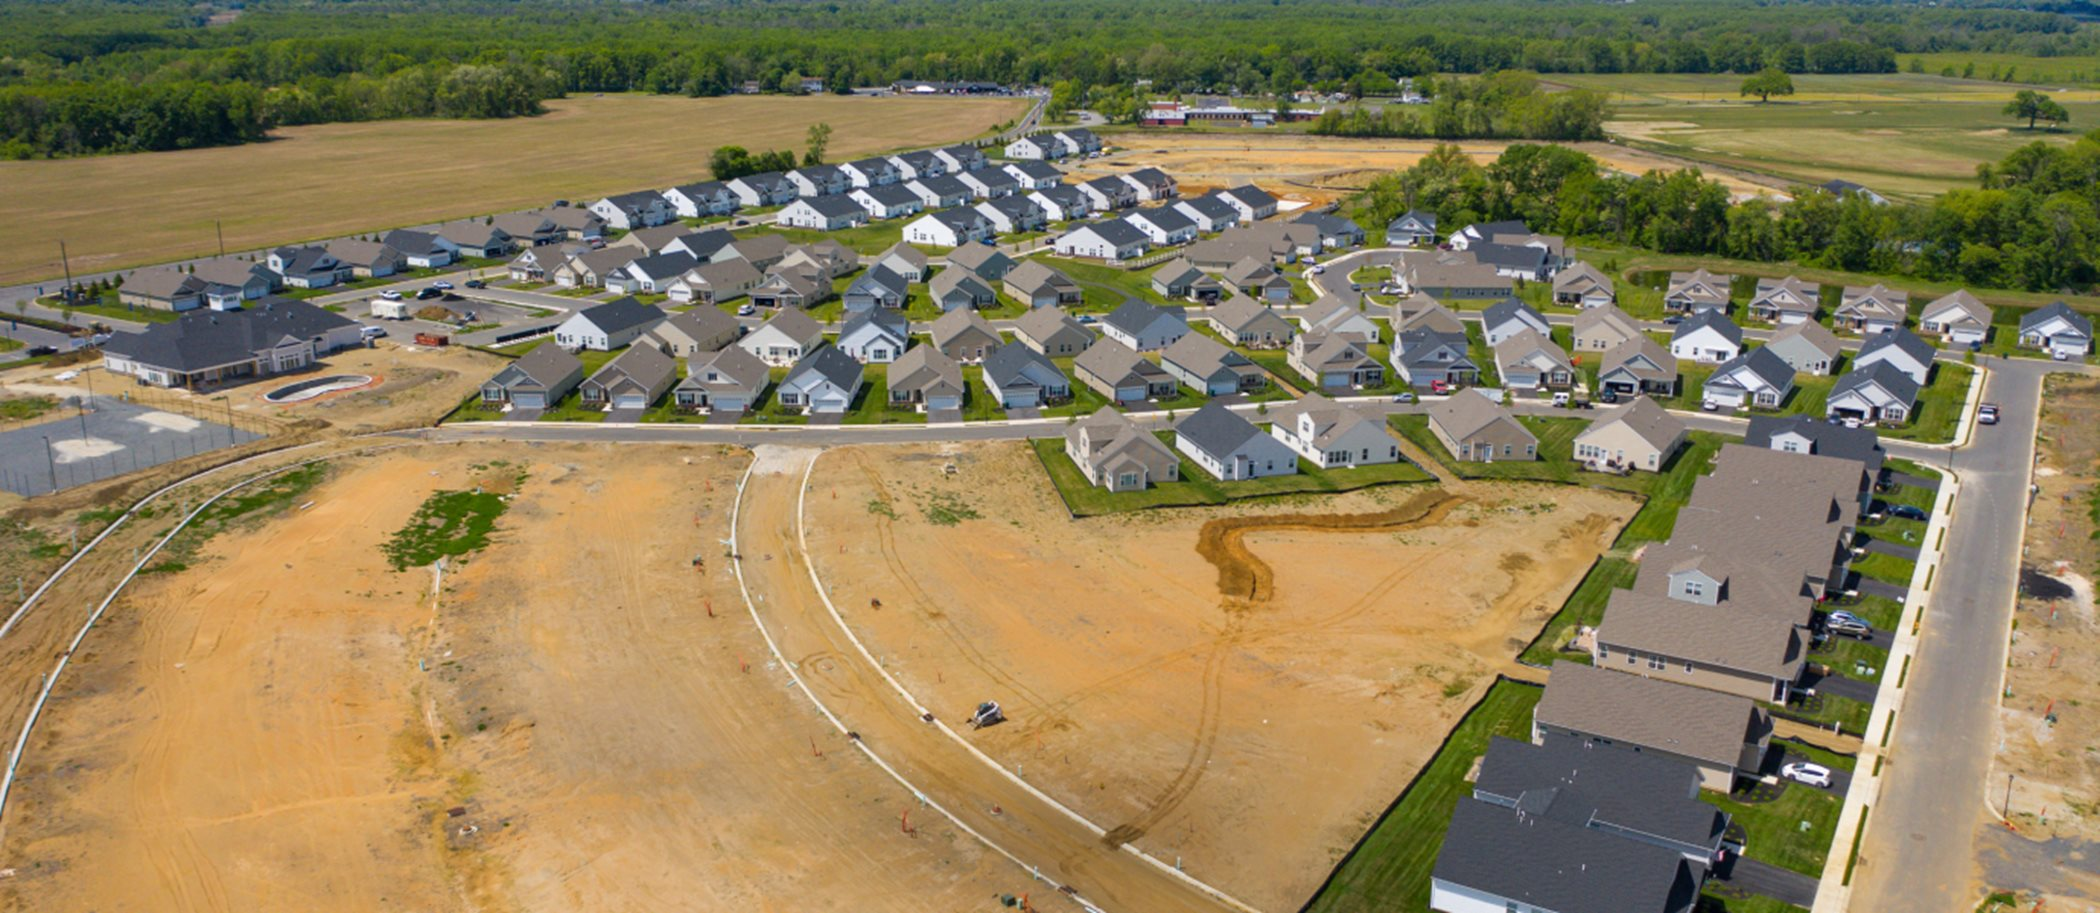 Venue at Smithville Greene Aerial view